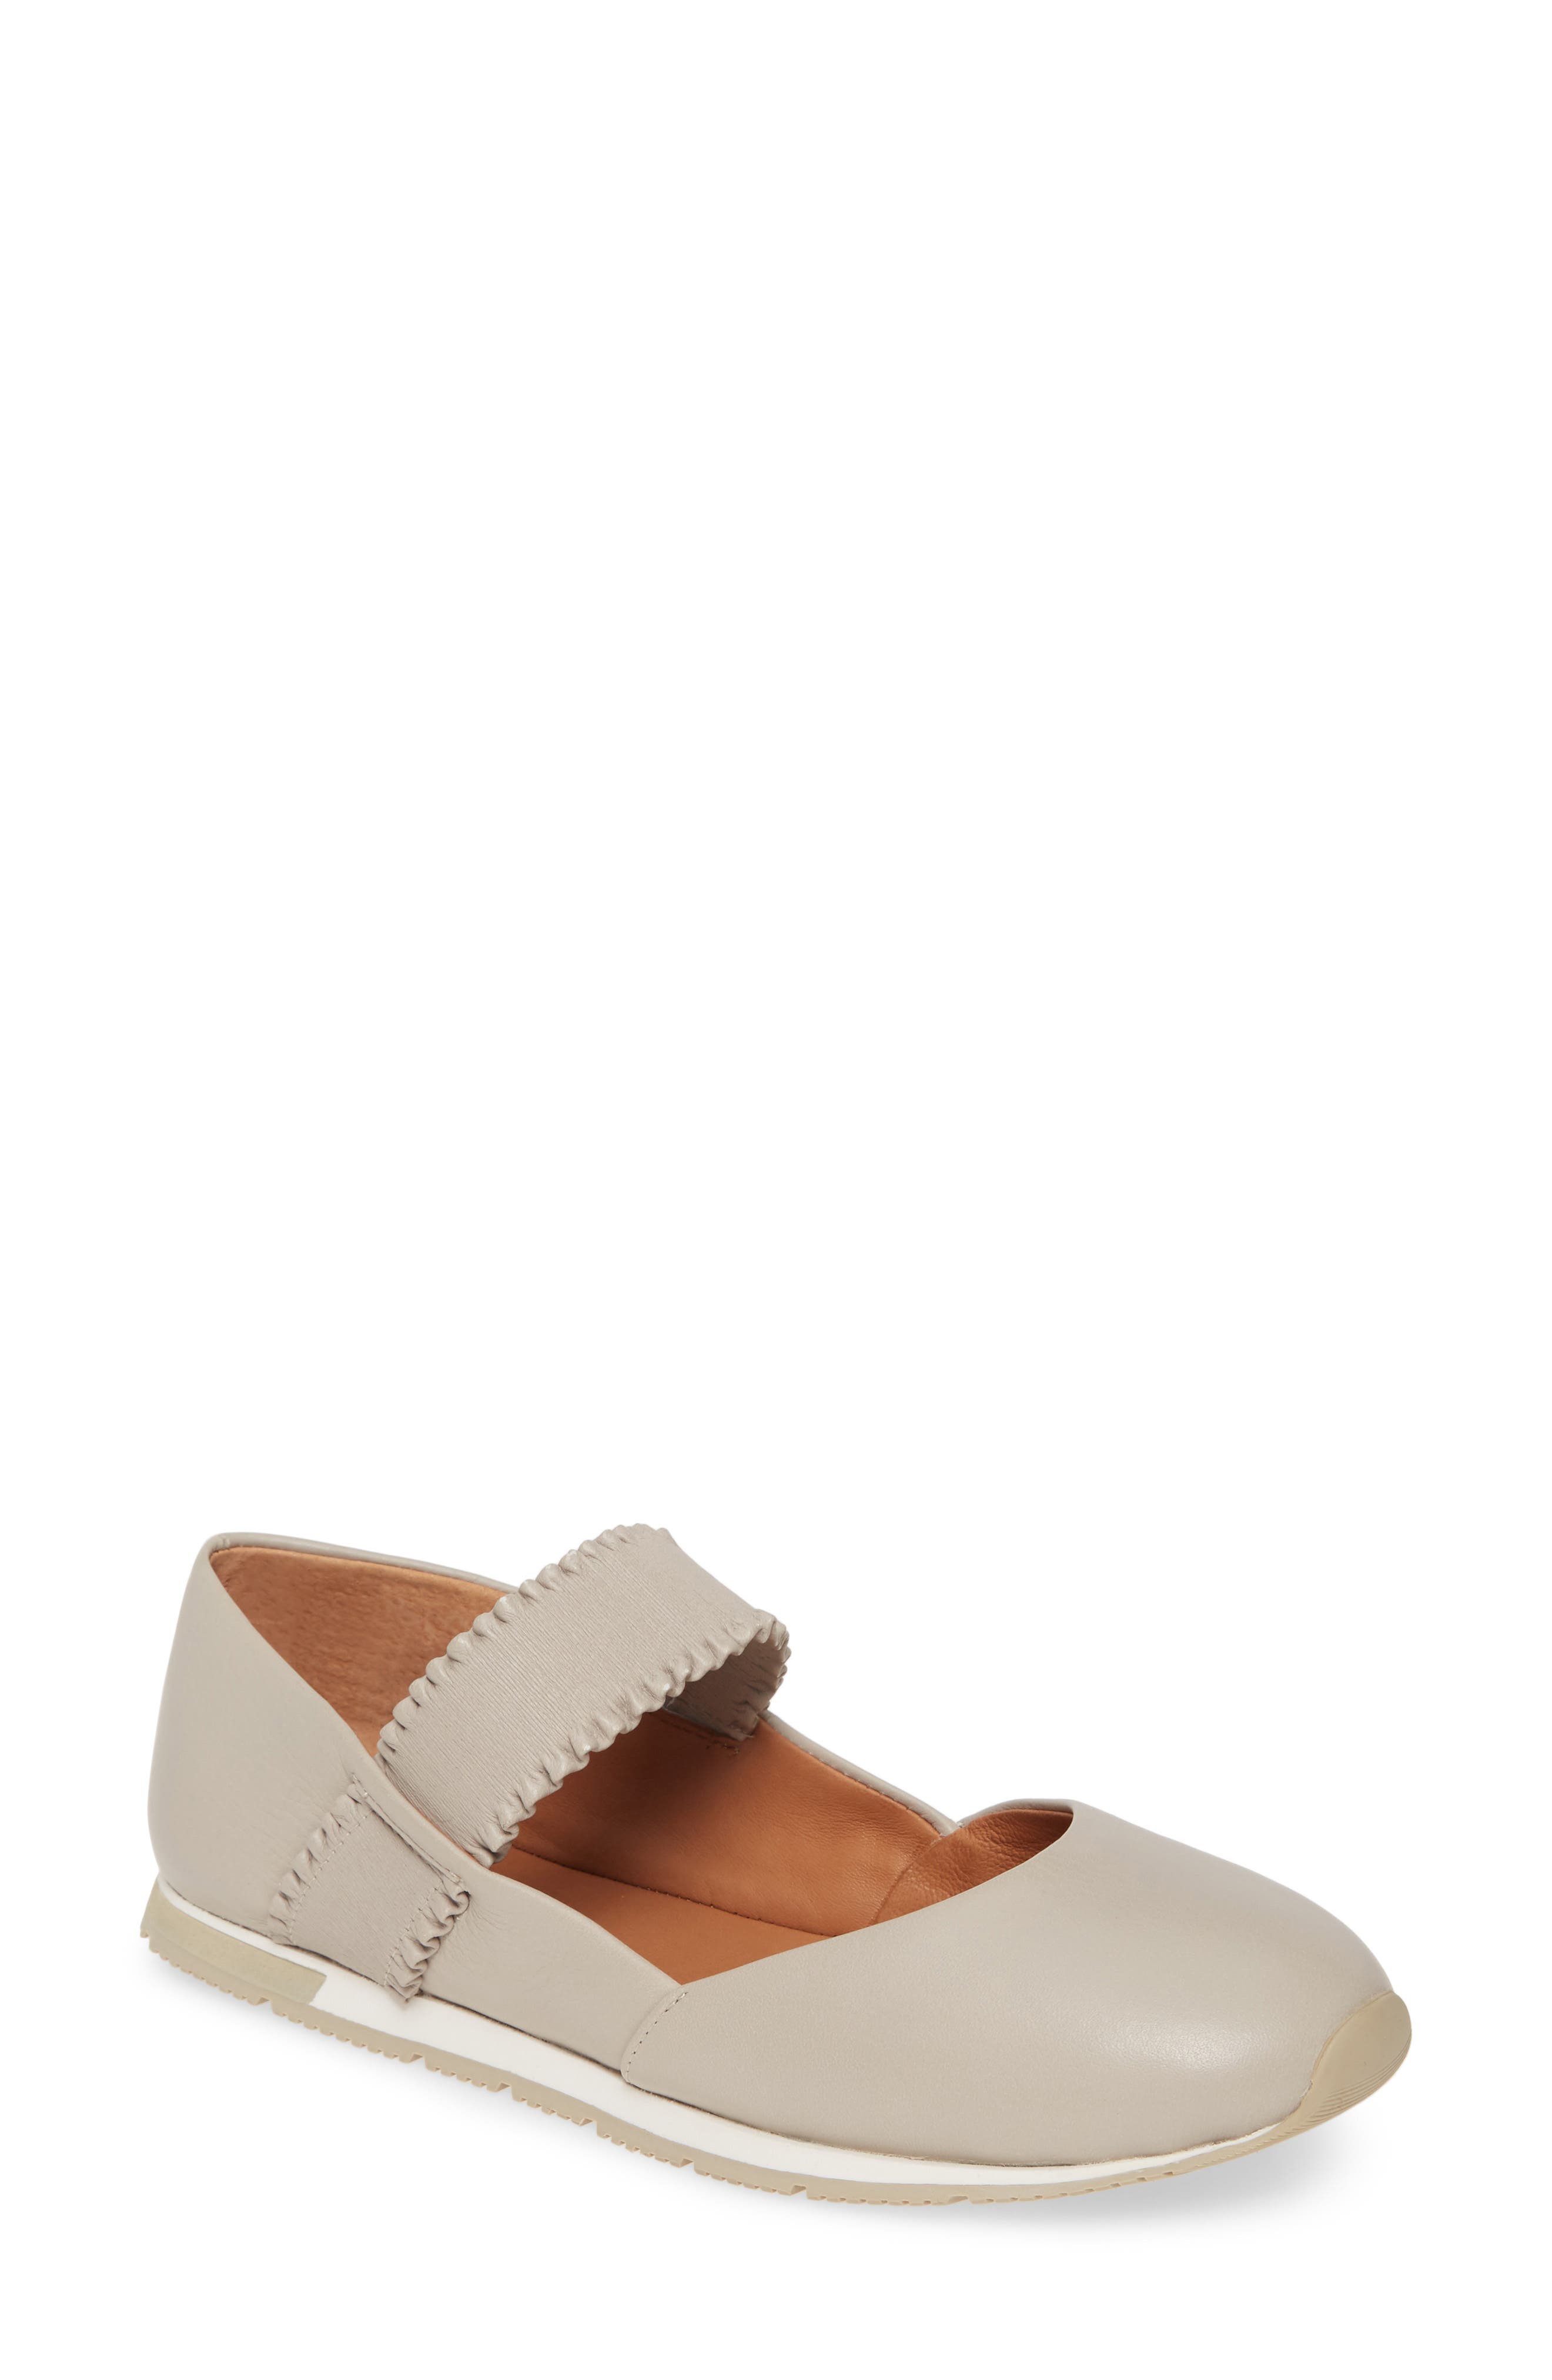 Image of Gentle Souls by Kenneth Cole Luca Ruffle Strap Leather Flat